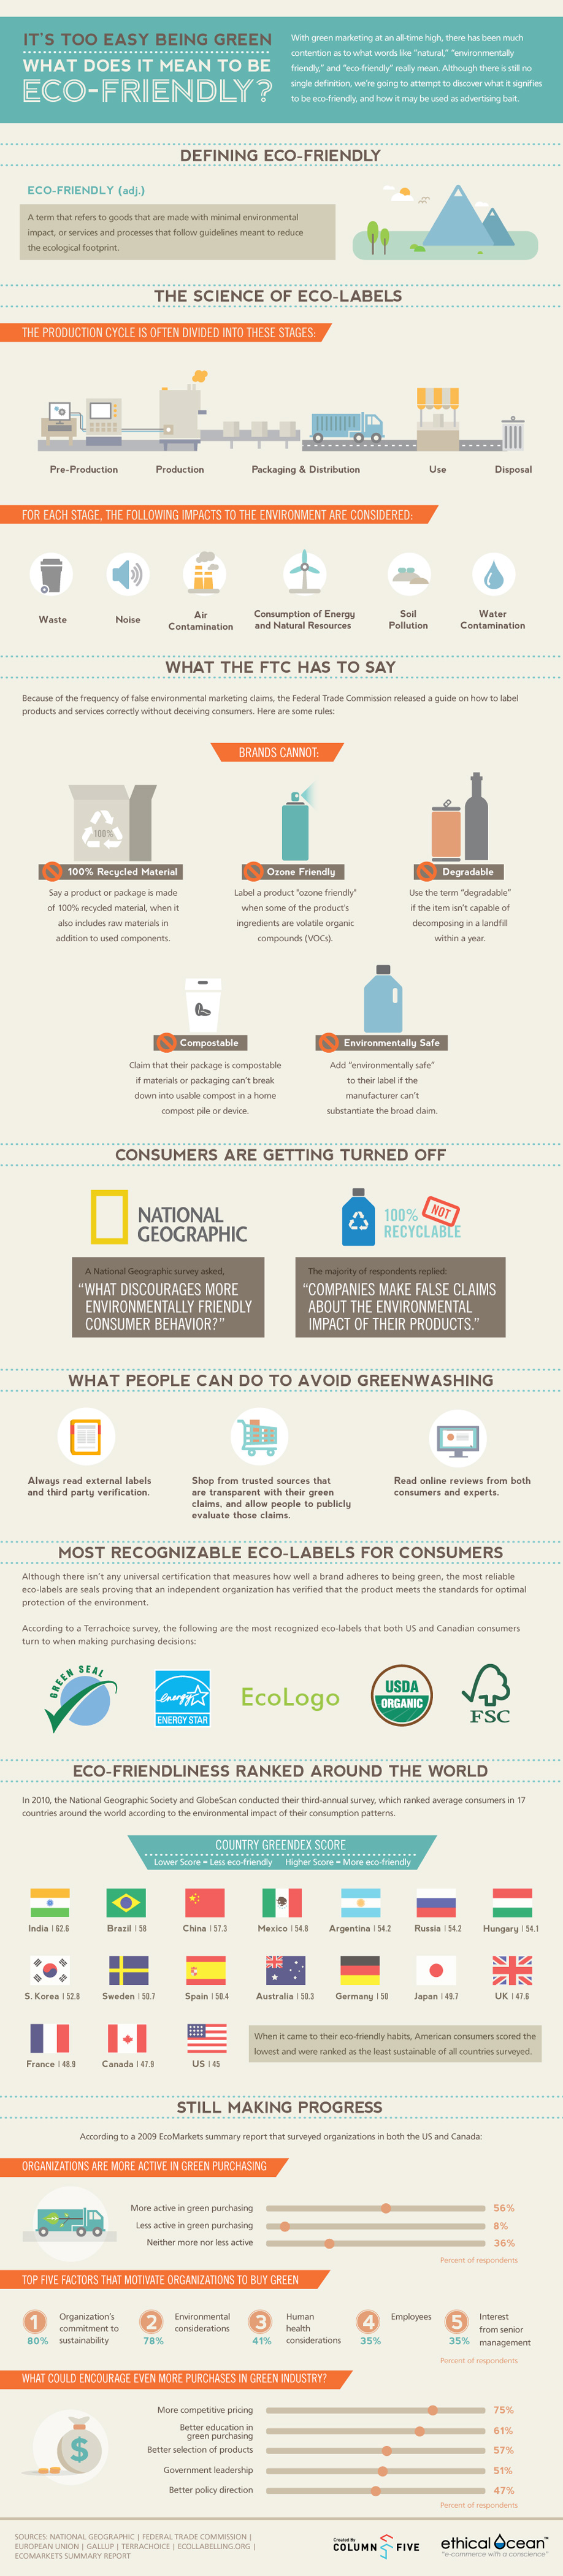 What does eco friendly really mean?